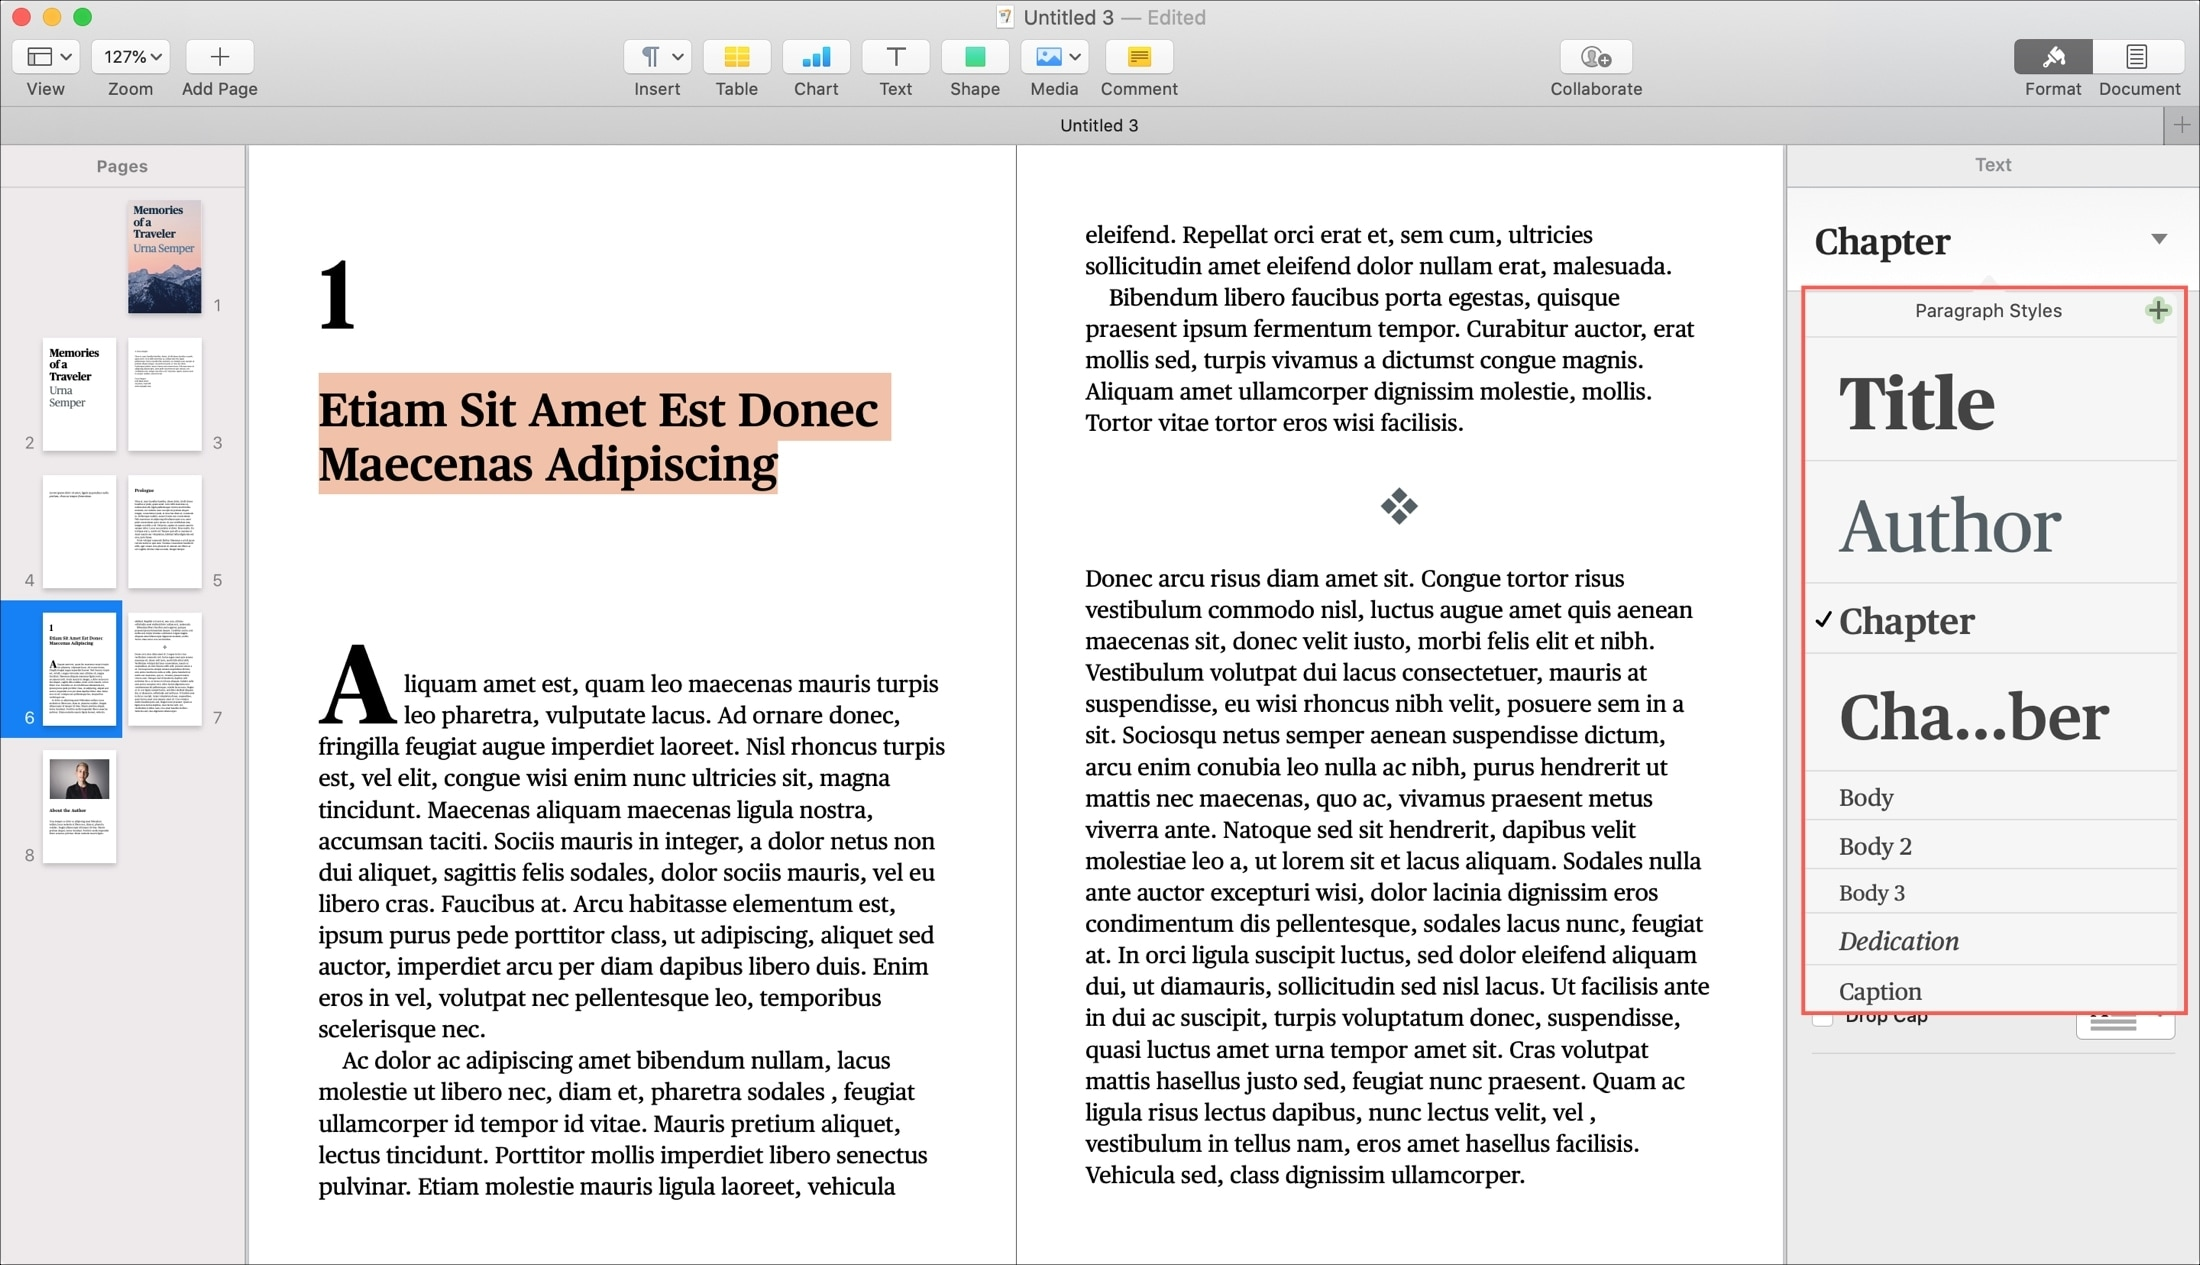 Pages Book Paragraph Styles on Mac